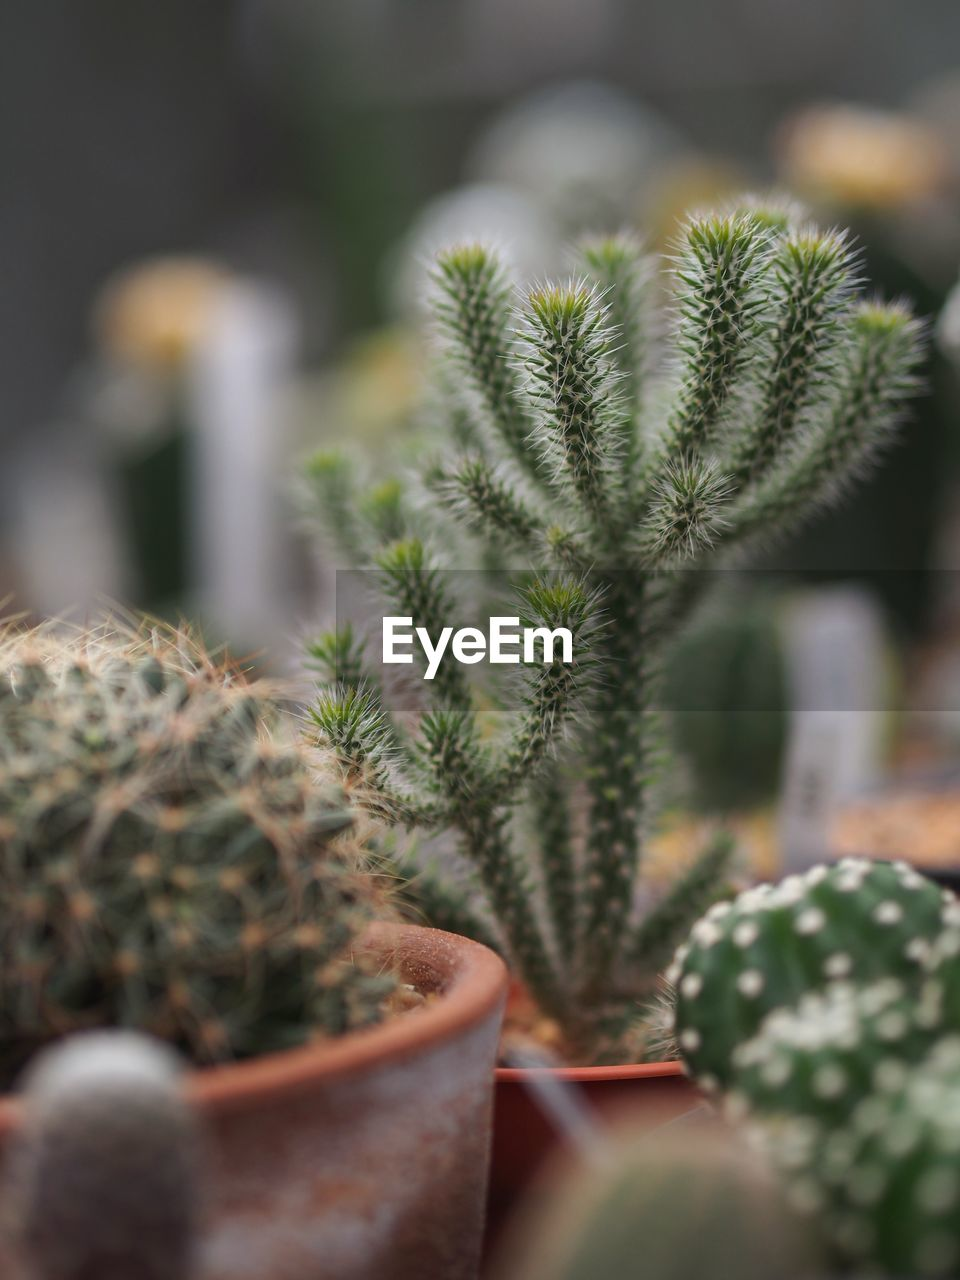 CLOSE-UP OF CACTUS PLANT IN POTTED PLANTS